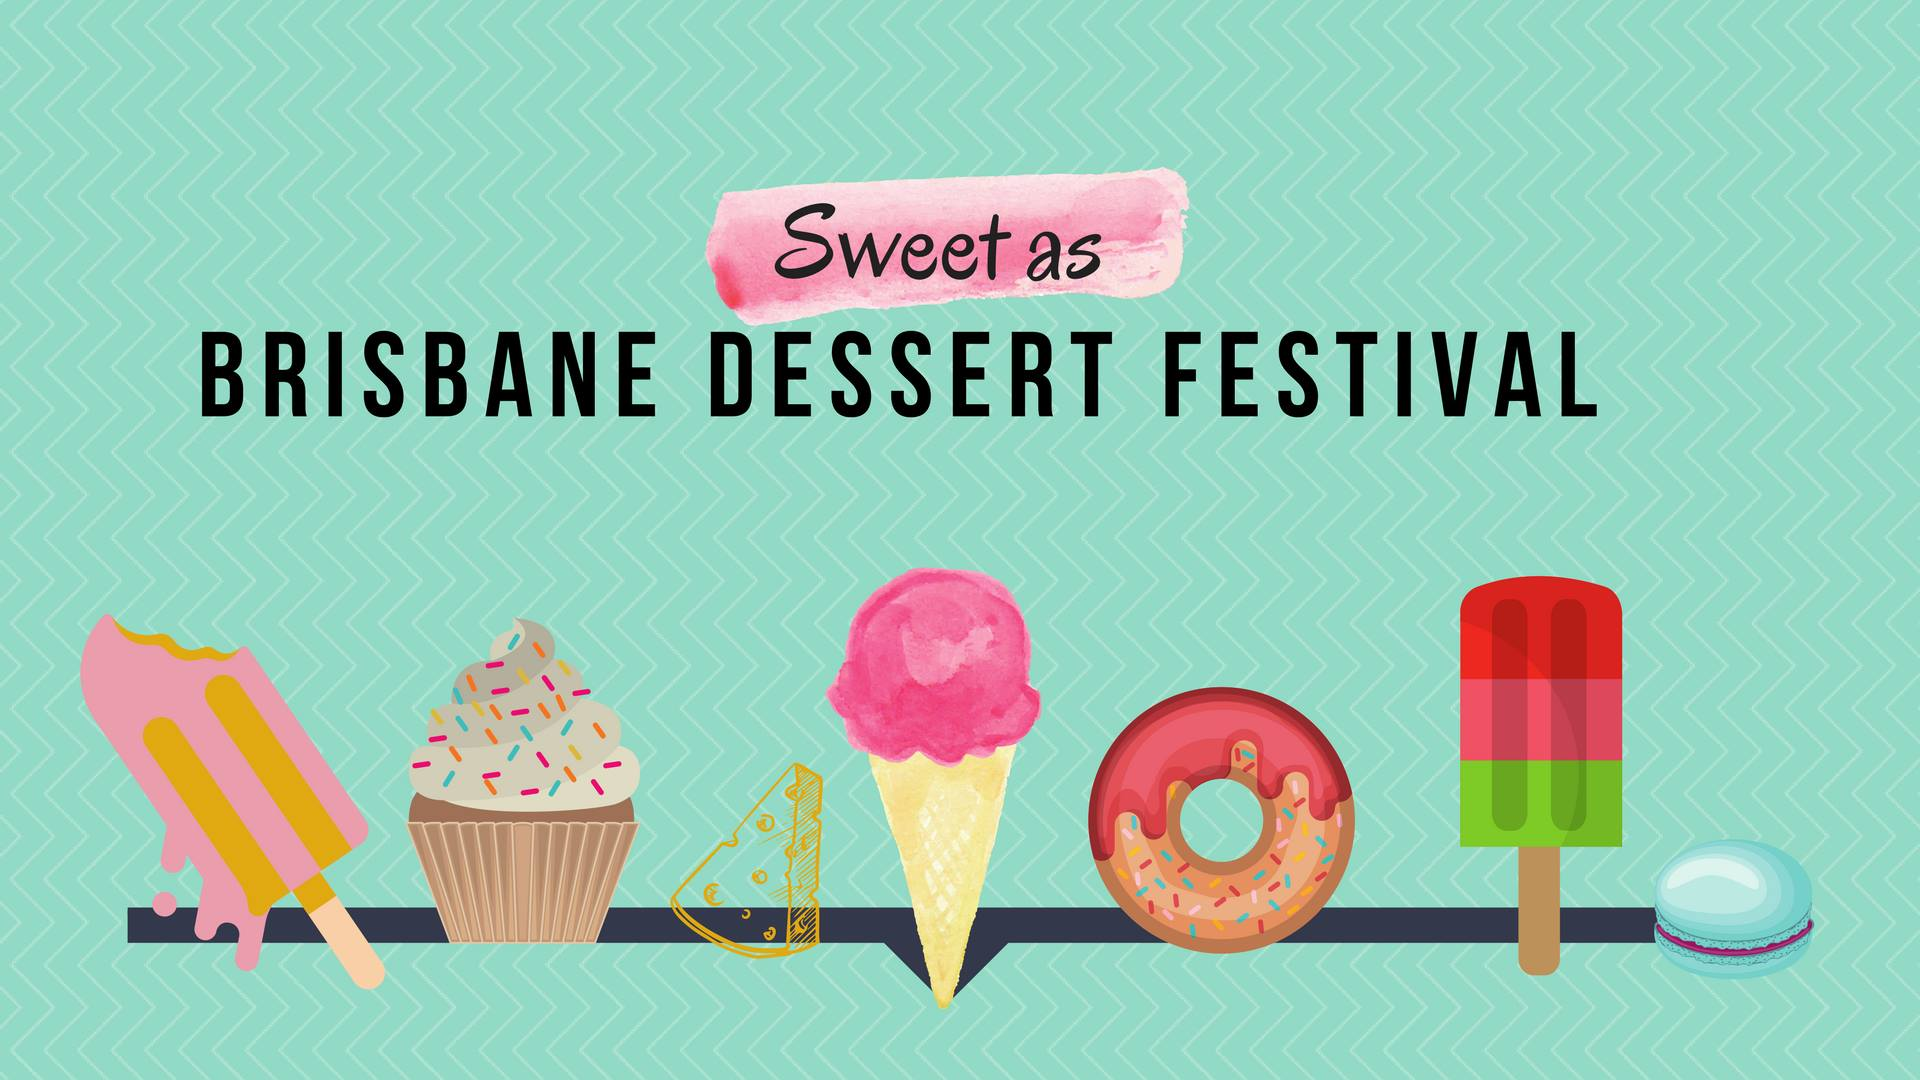 Tickets for Sweet As Brisbane Dessert Festival in South Brisbane from Ticketbooth